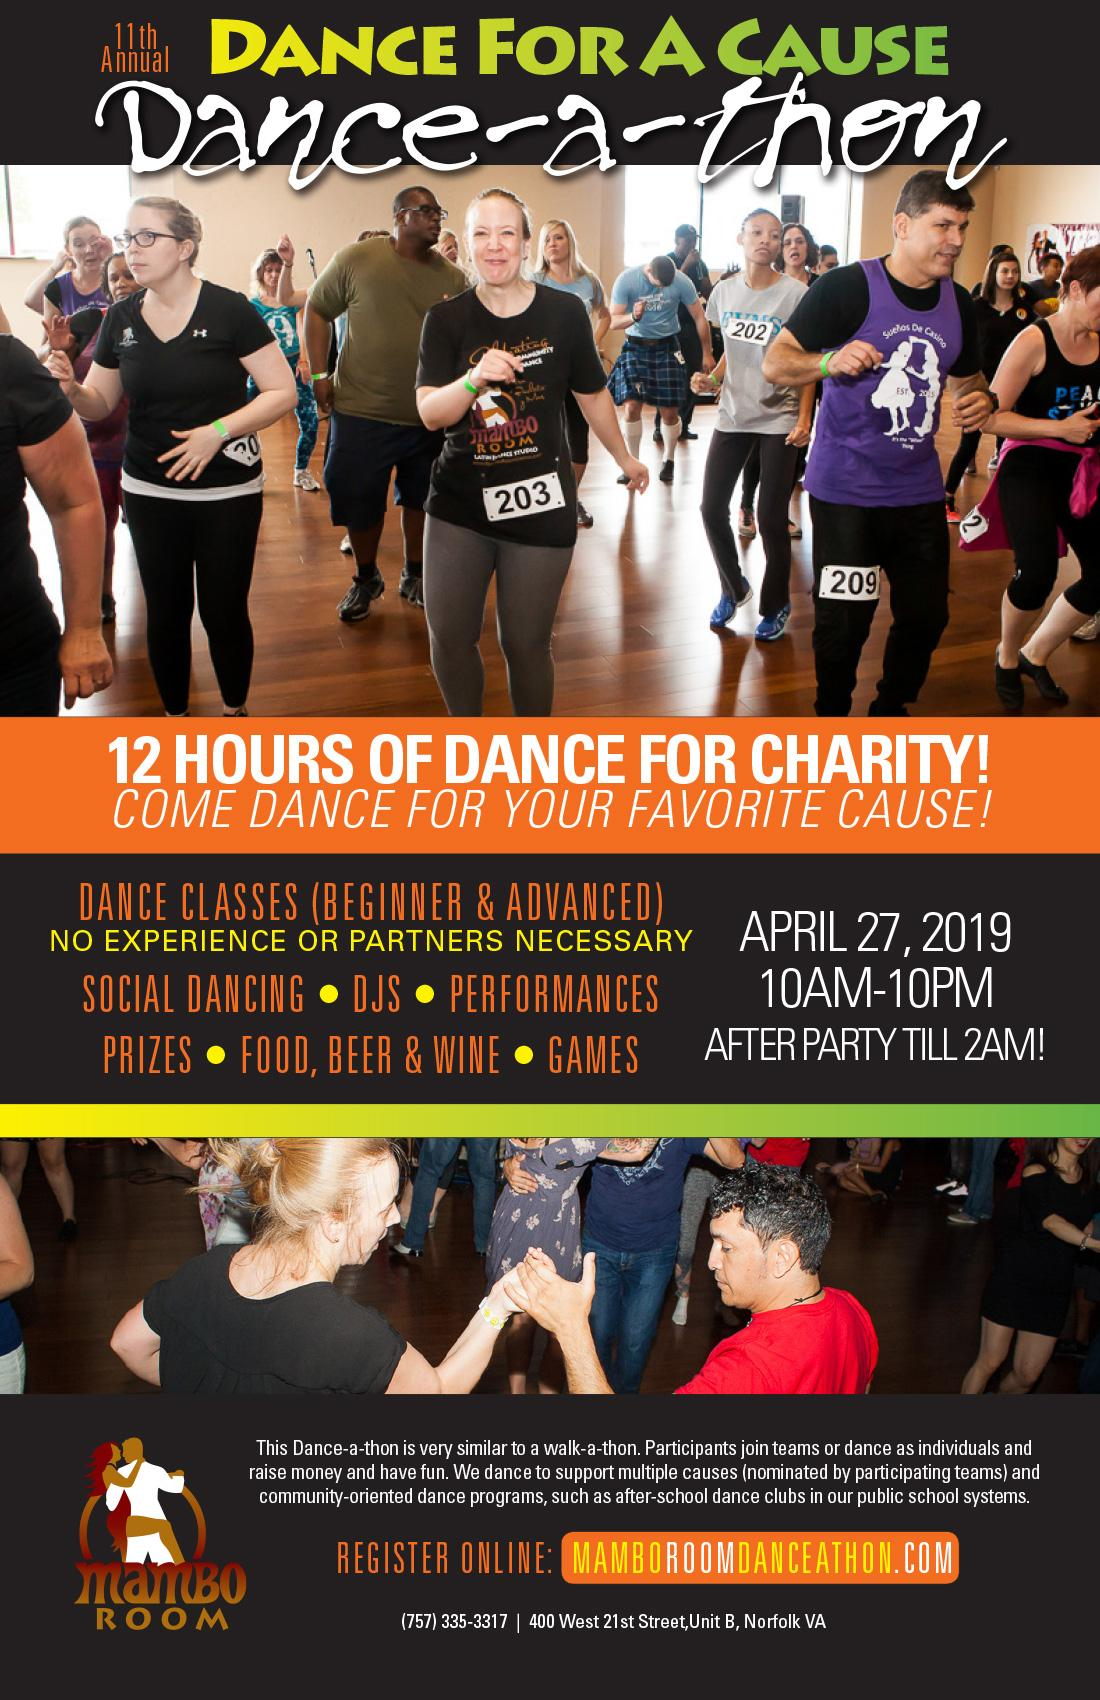 danceathon-flyer-2019